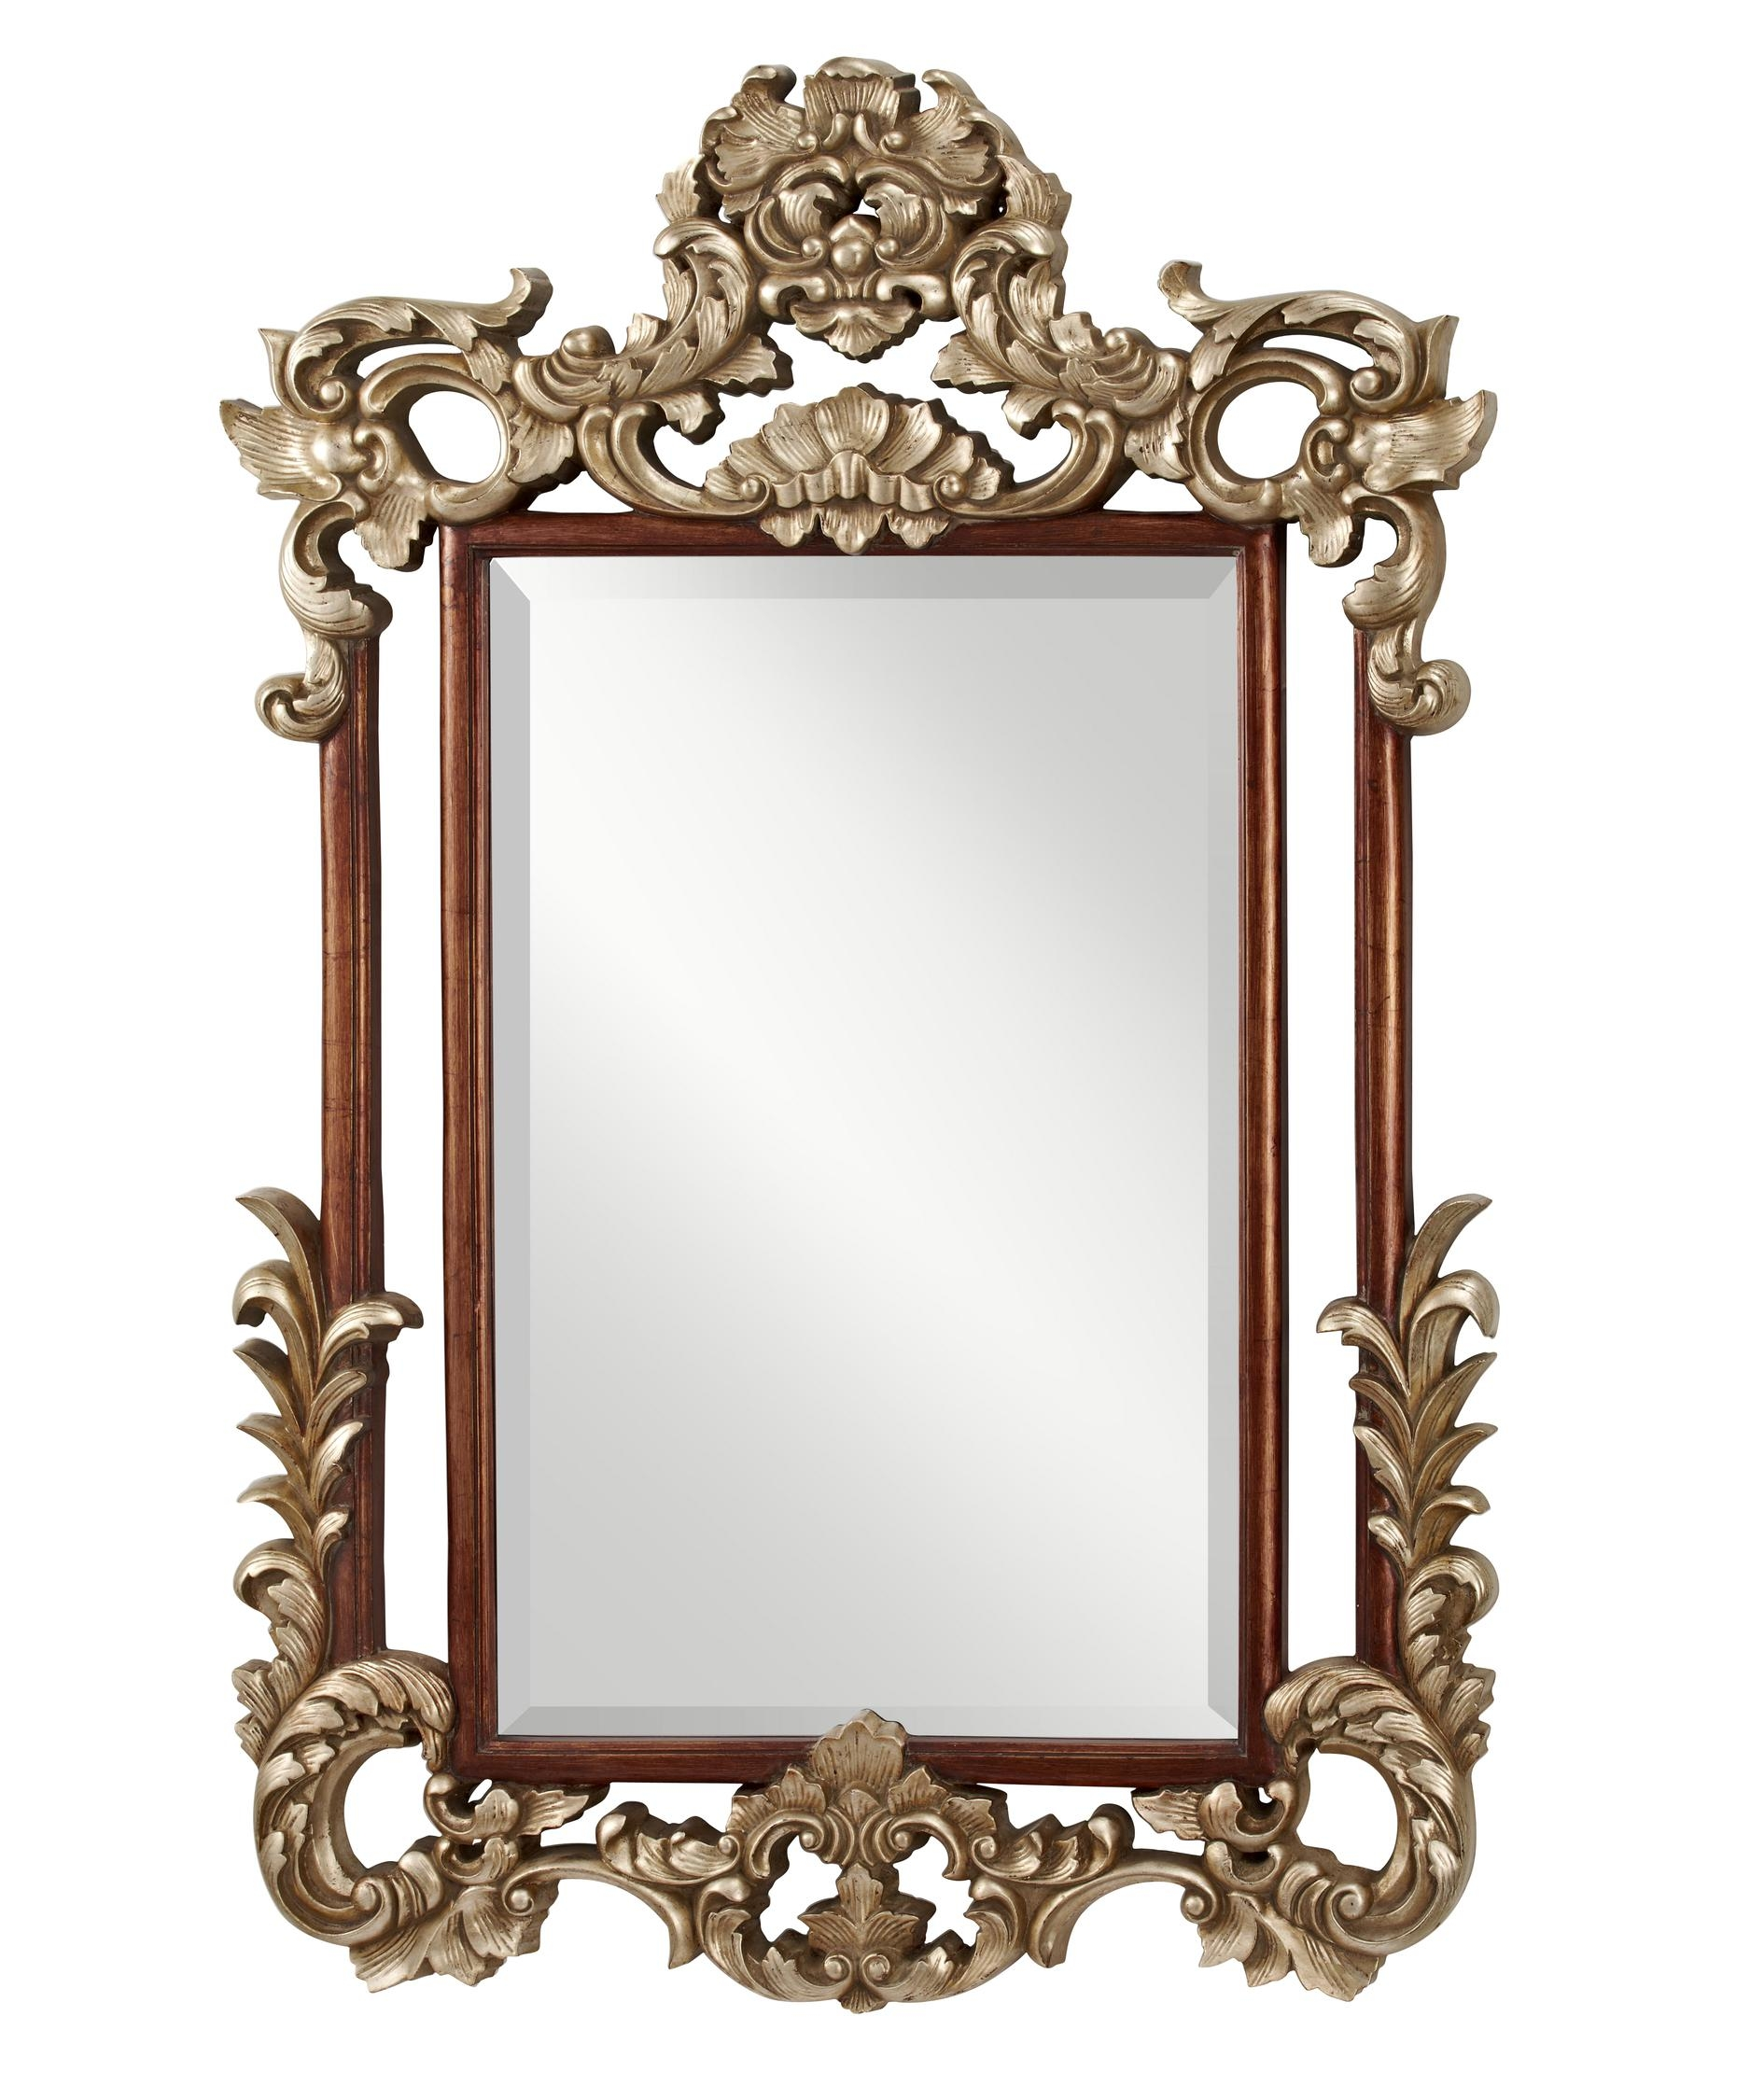 Murray Feiss Mr1128 Suzanne Wall Mirror Capitol Lighting 1 With Old Style Mirror (Image 10 of 15)